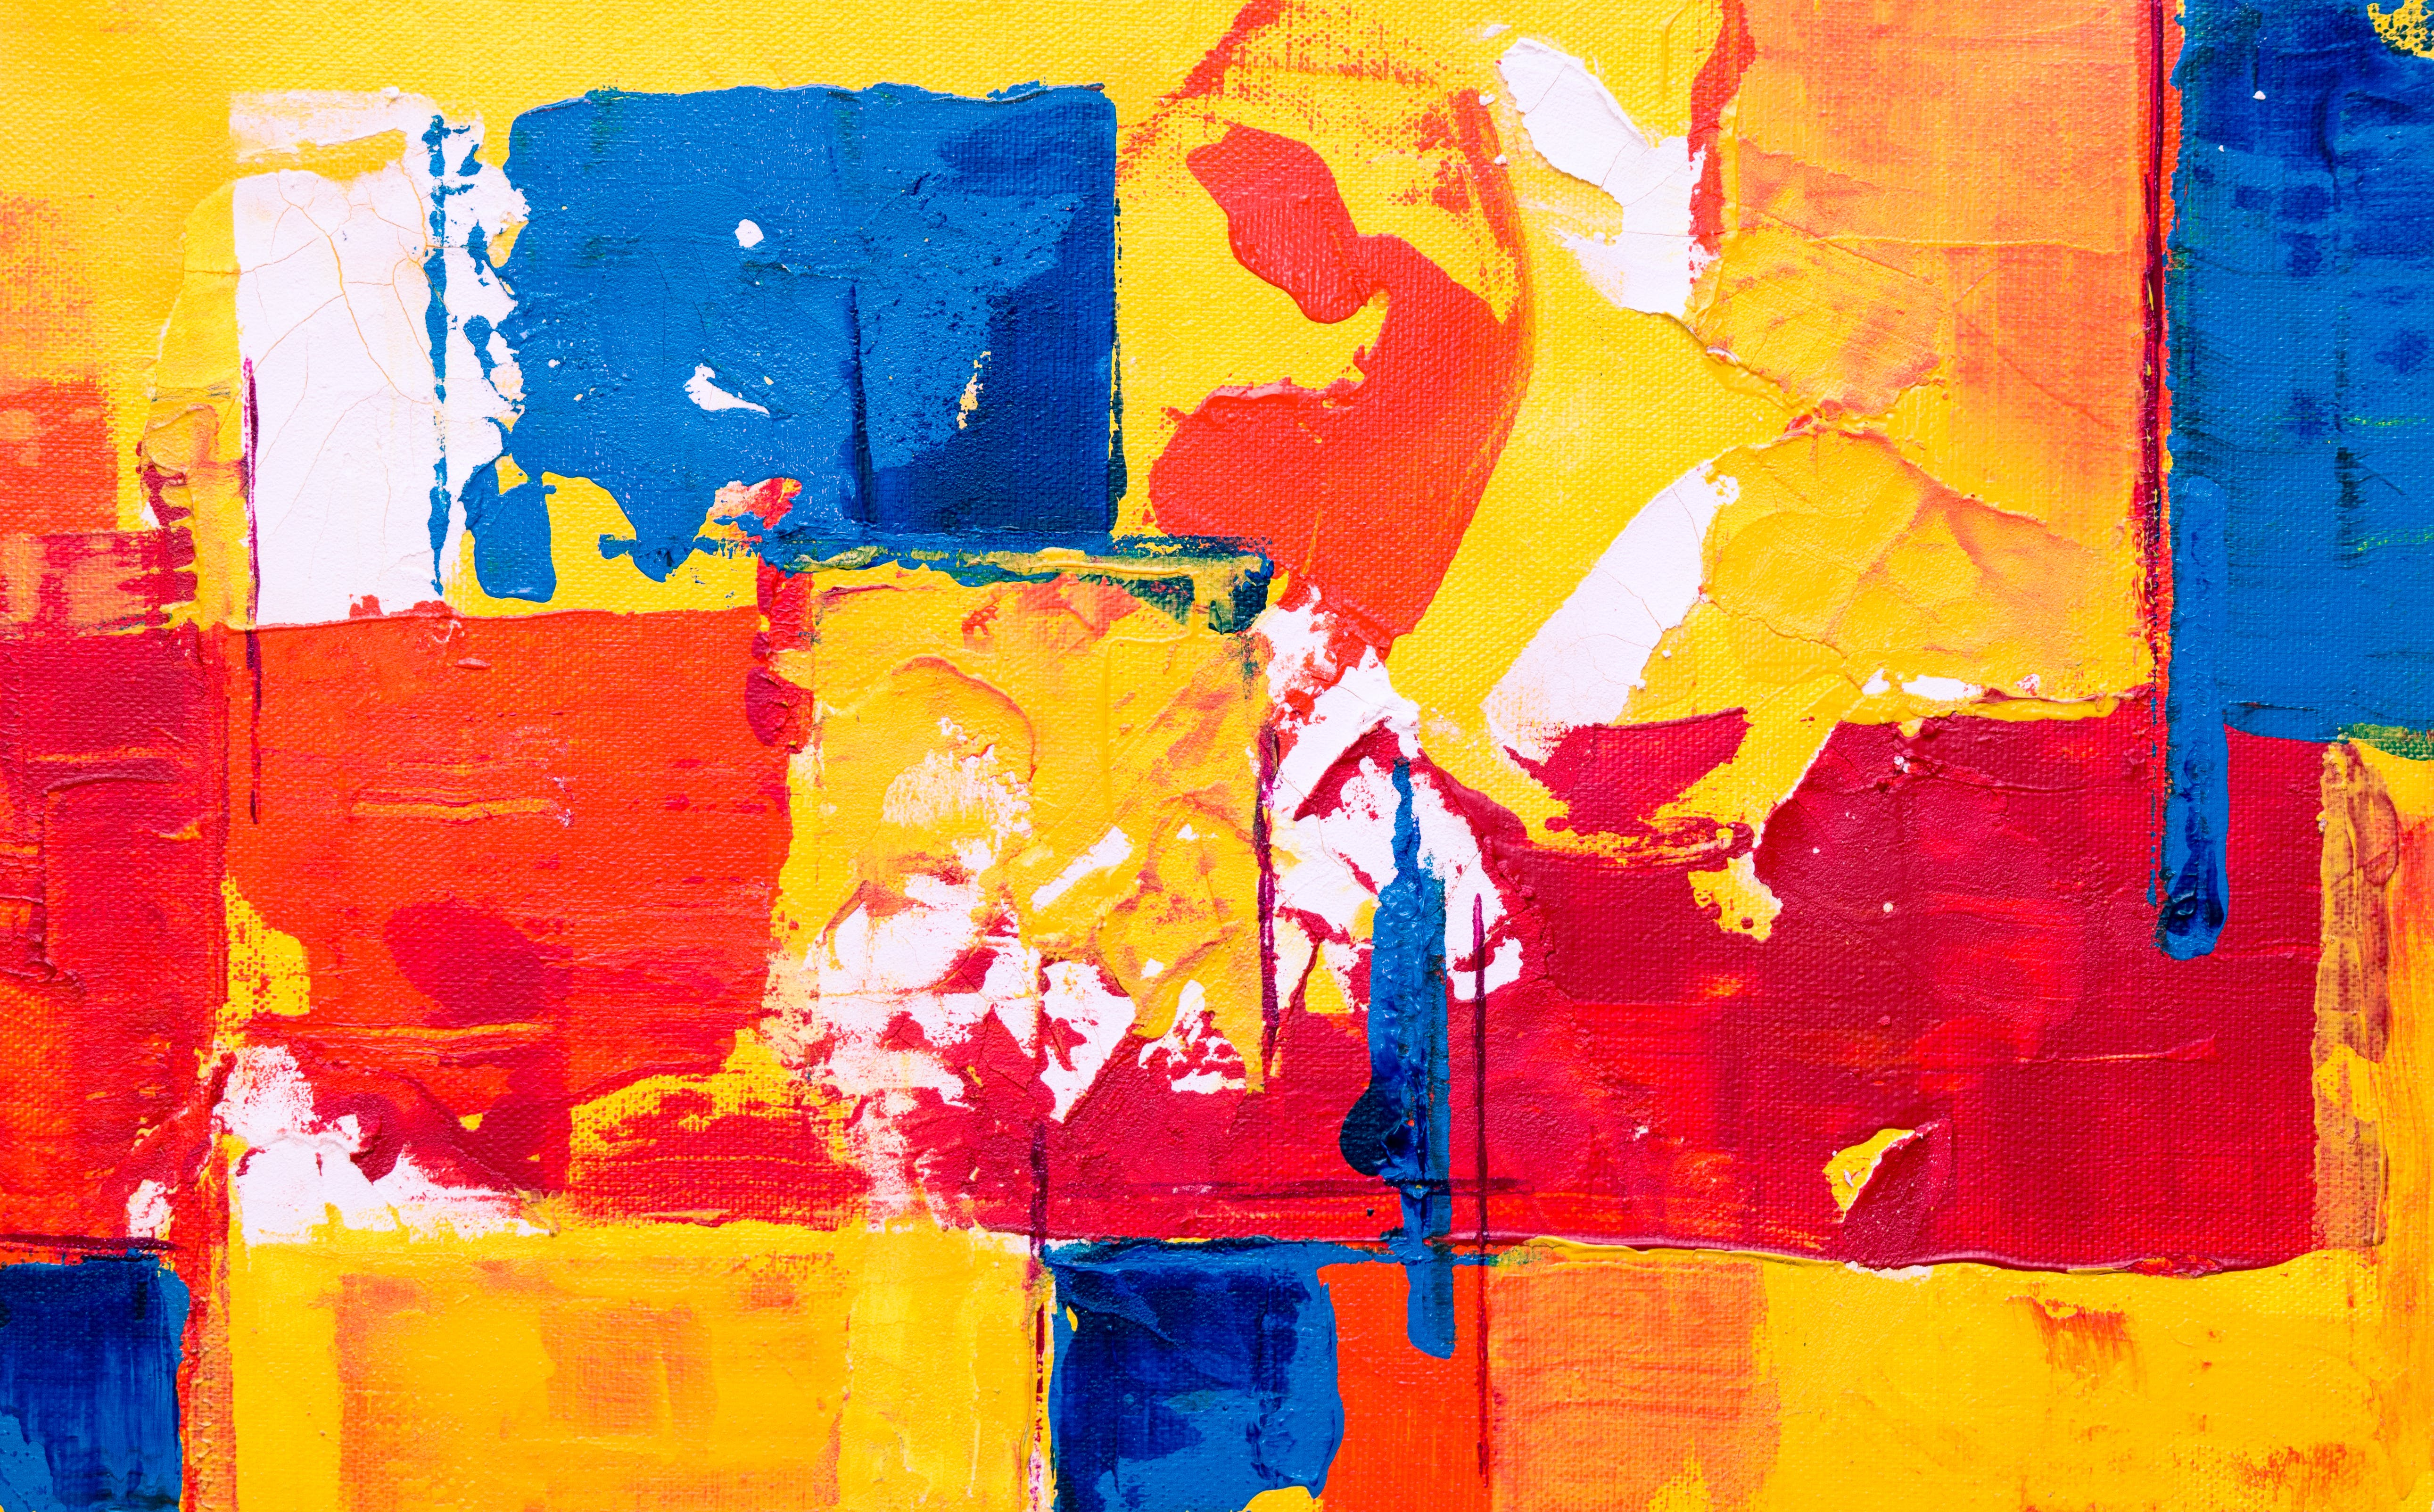 Orange, Red, and Blue Abstract Painting